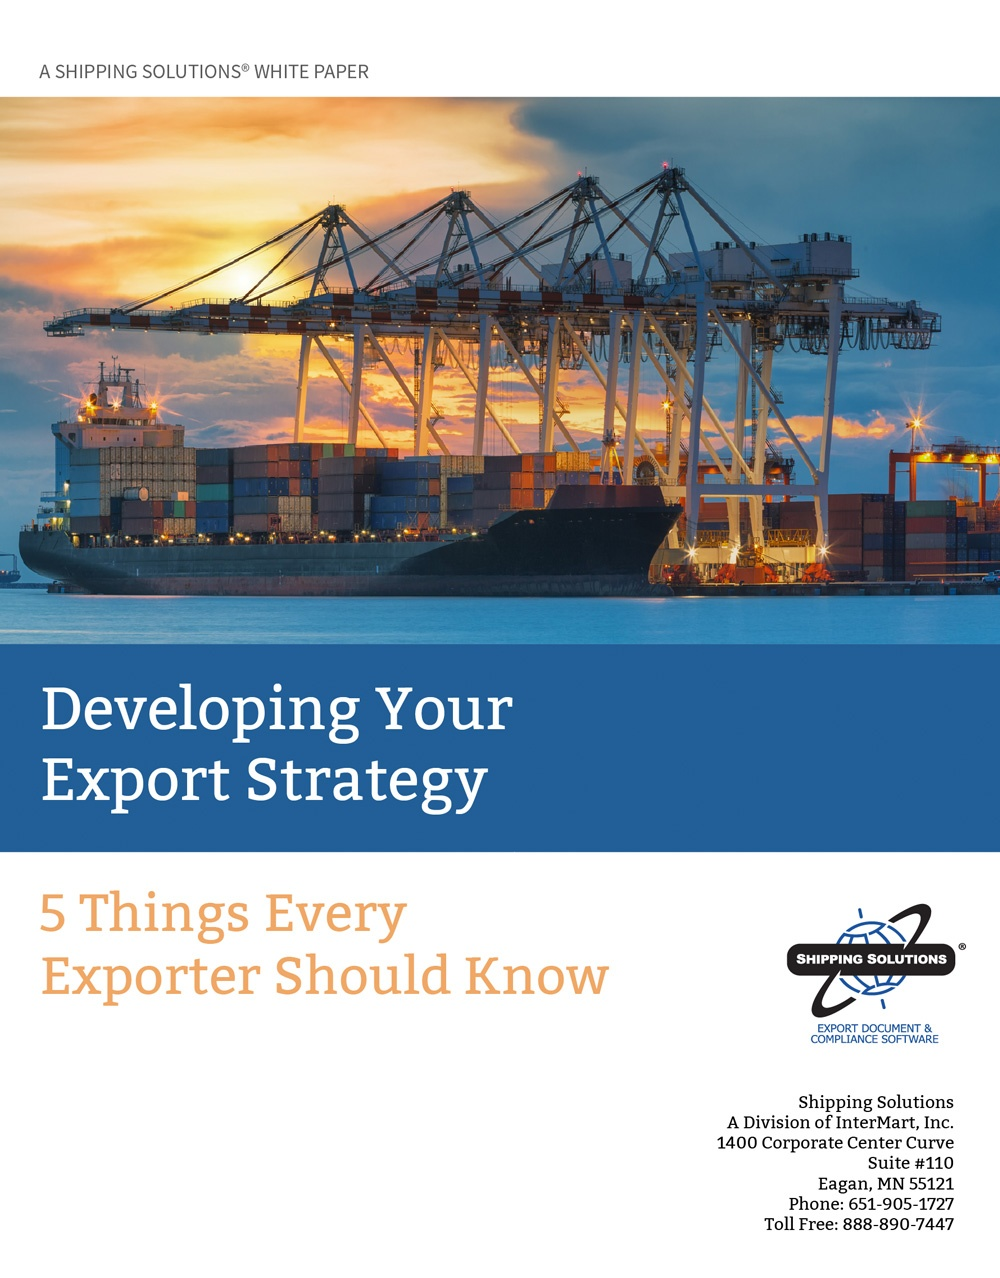 Developing Your Export Strategy